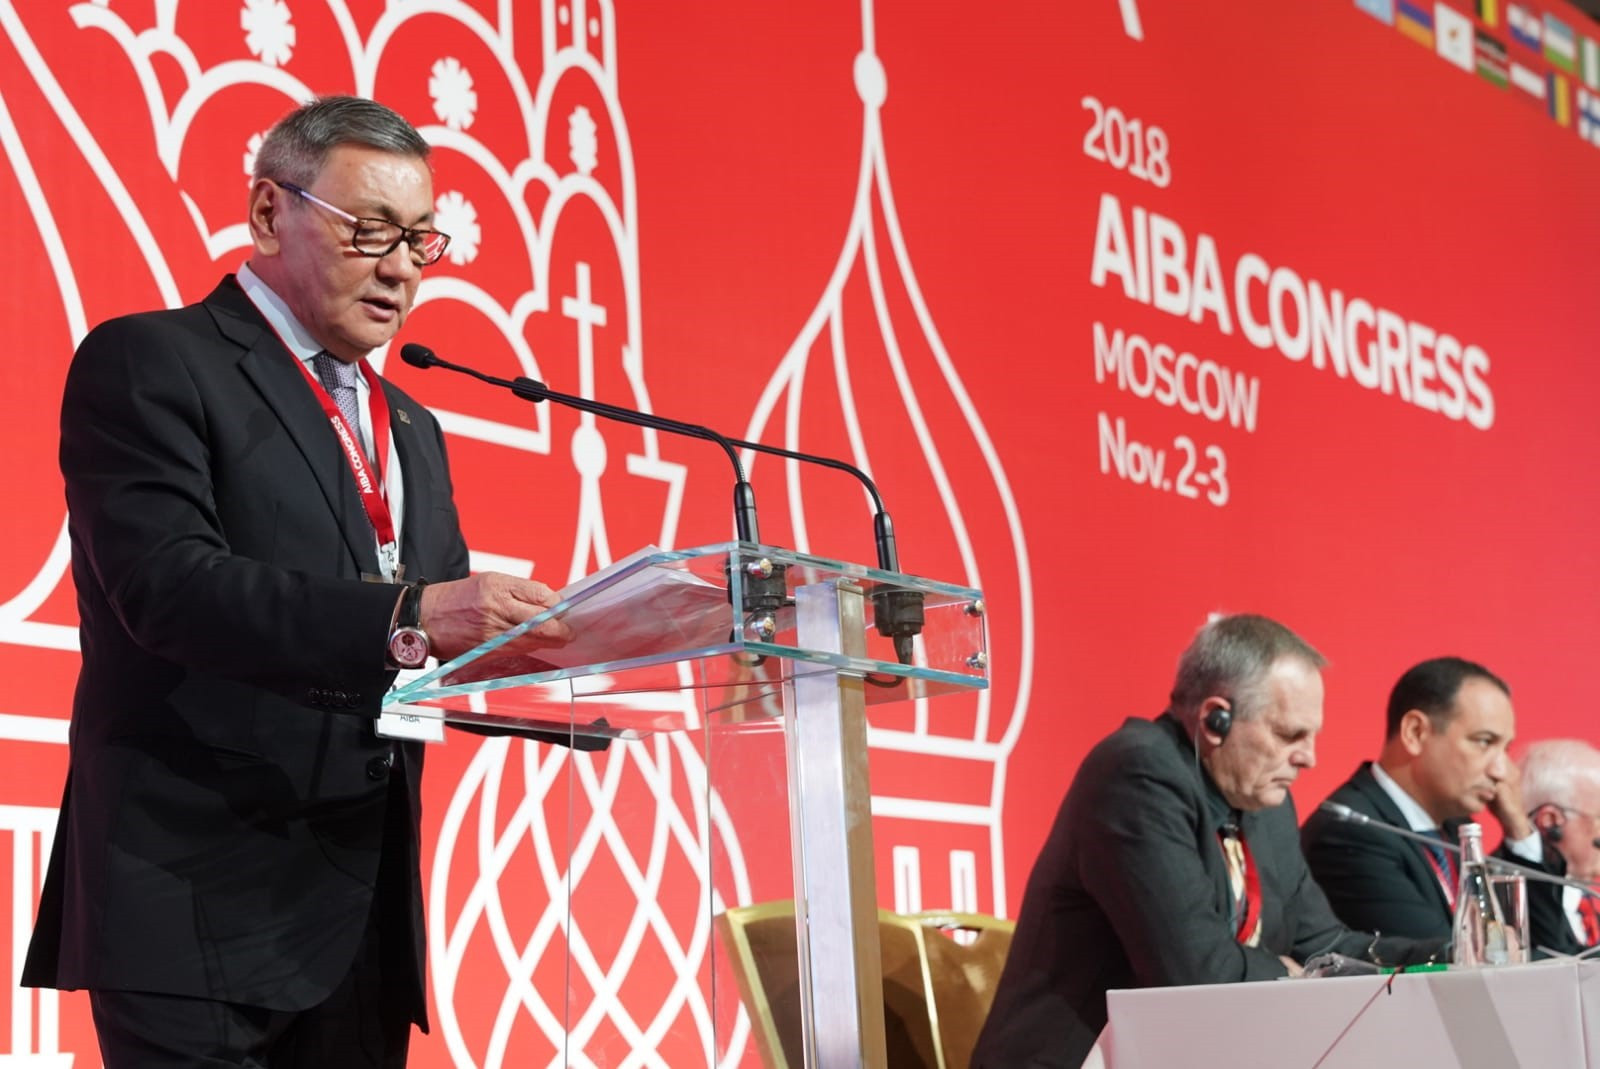 The election of Gafur Rakhimov as permanent AIBA President last November appears to have been a major factor in the decision of the IOC to withdraw recognition of the world governing body ©AIBA